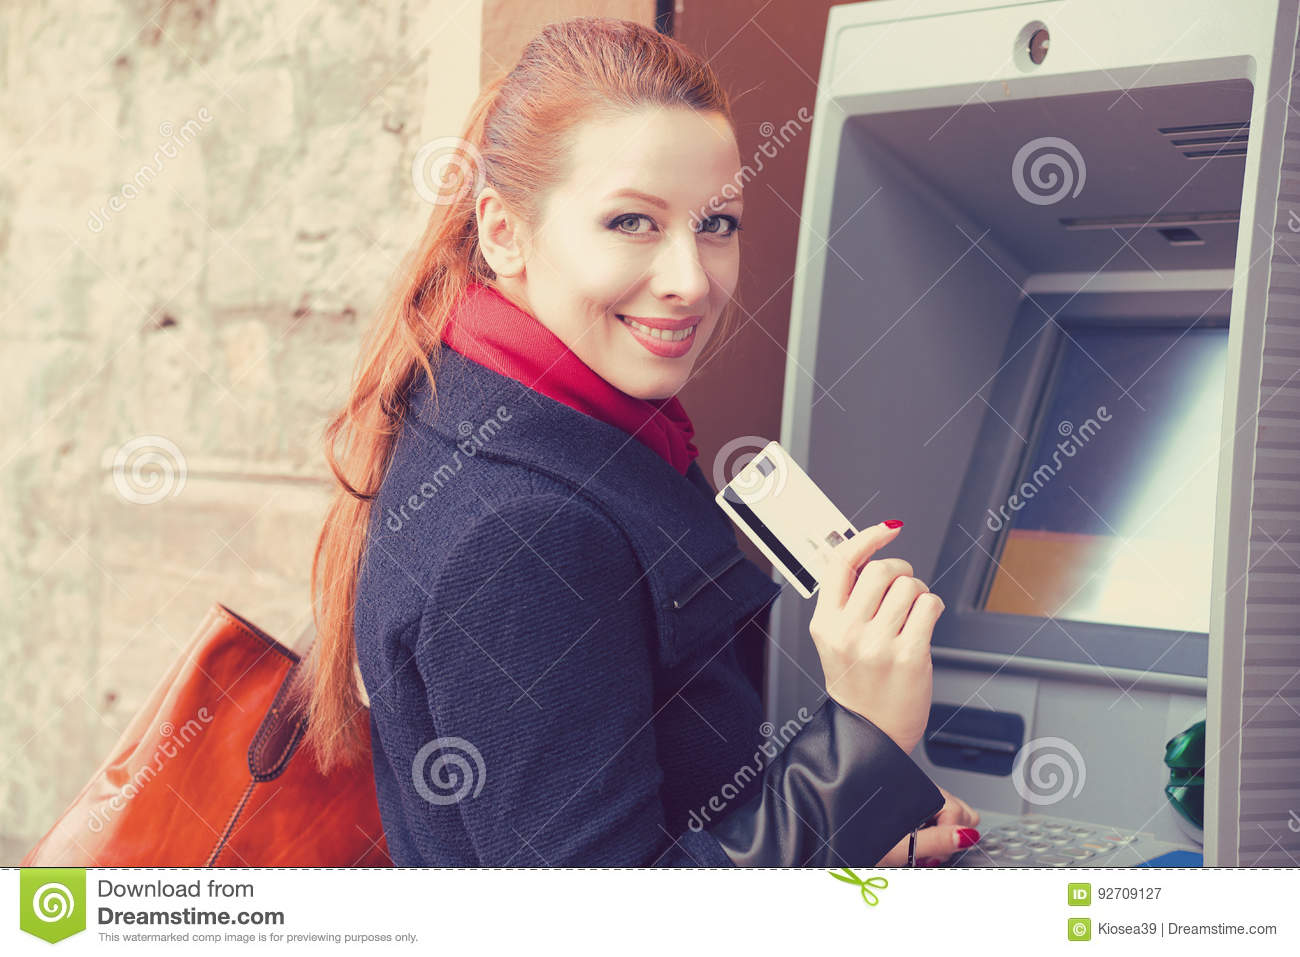 Happy woman with bank card using ATM